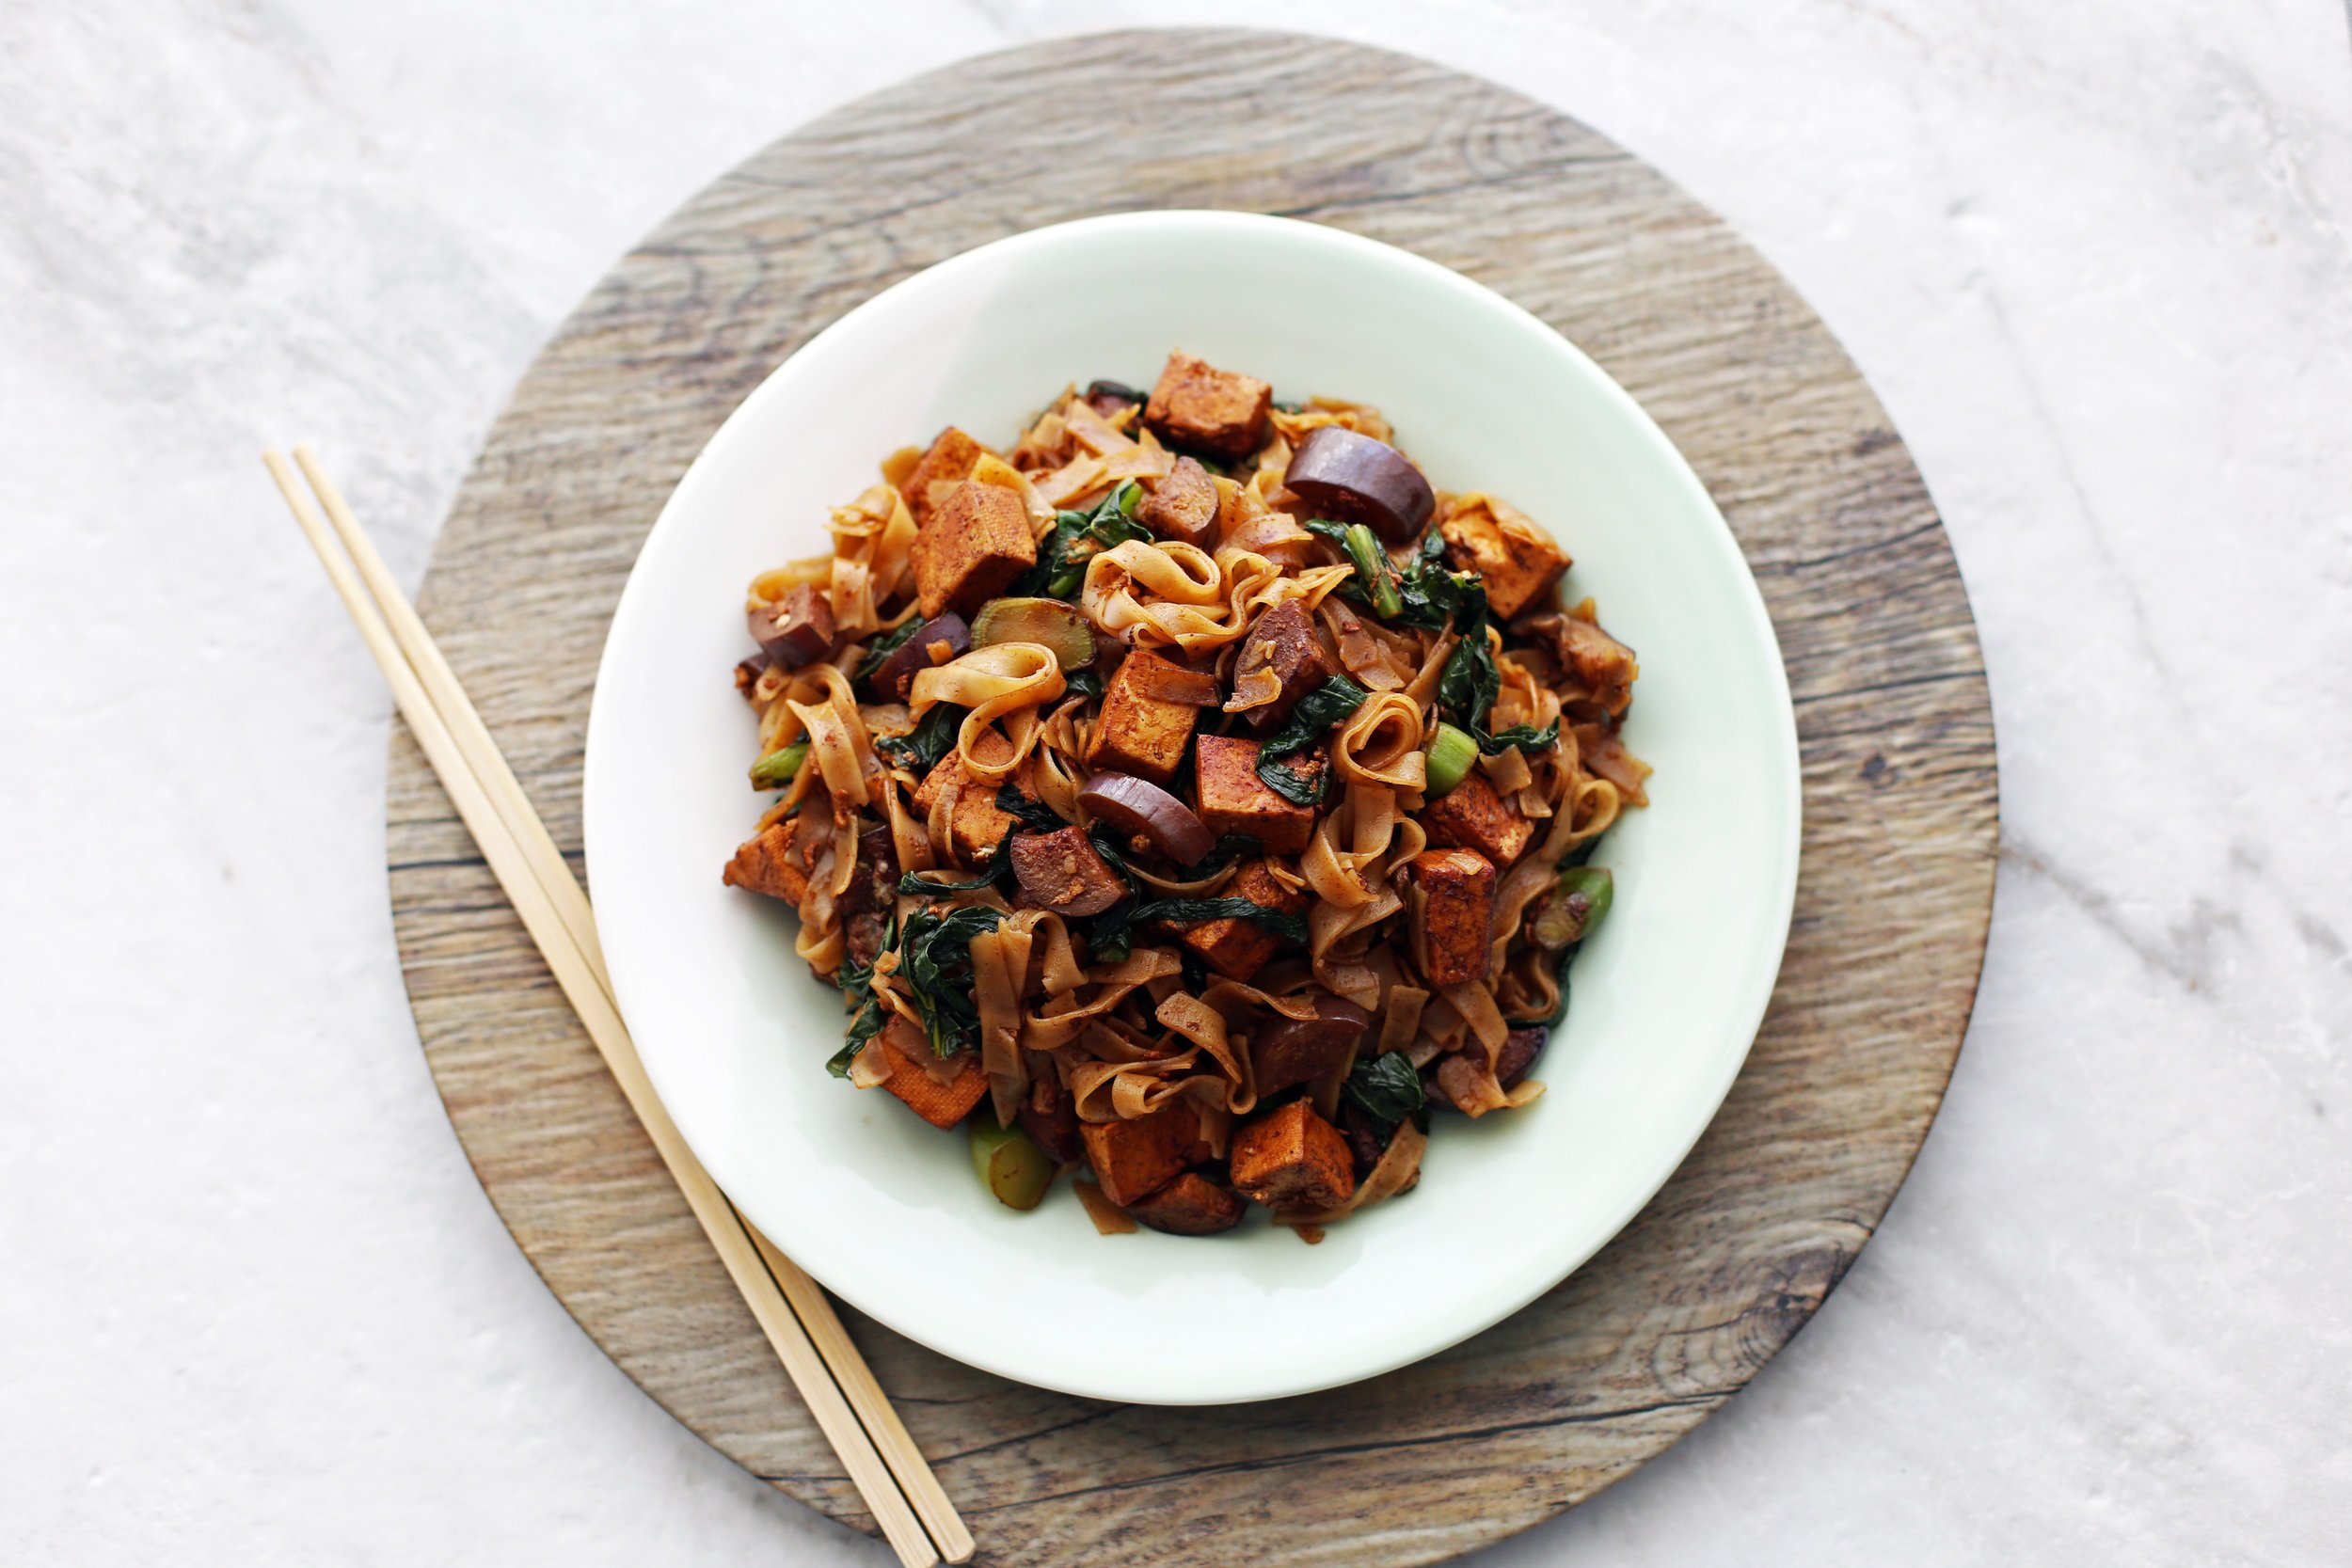 a plate of Vegetarian Pad See Ew topped with Thai basil, ready to eat